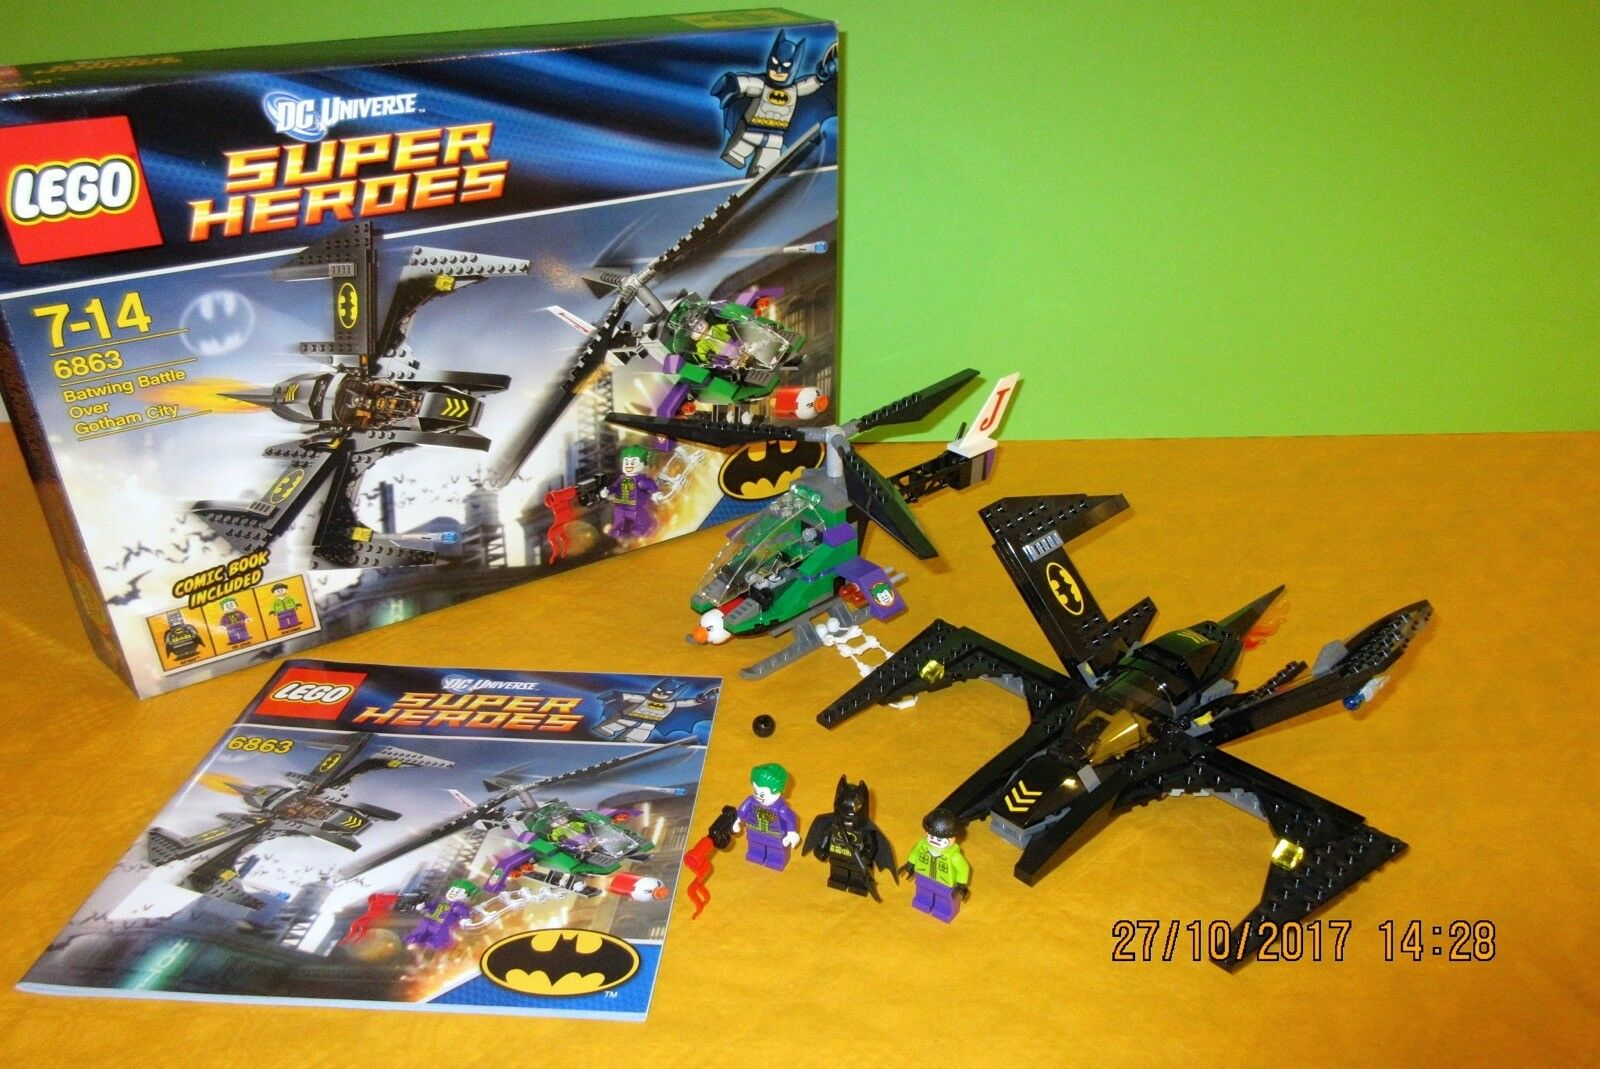 ♥LEGO♥ Batman Super Heroes 6863 Battle Over Gotham City, komplett, Figuren, BA..